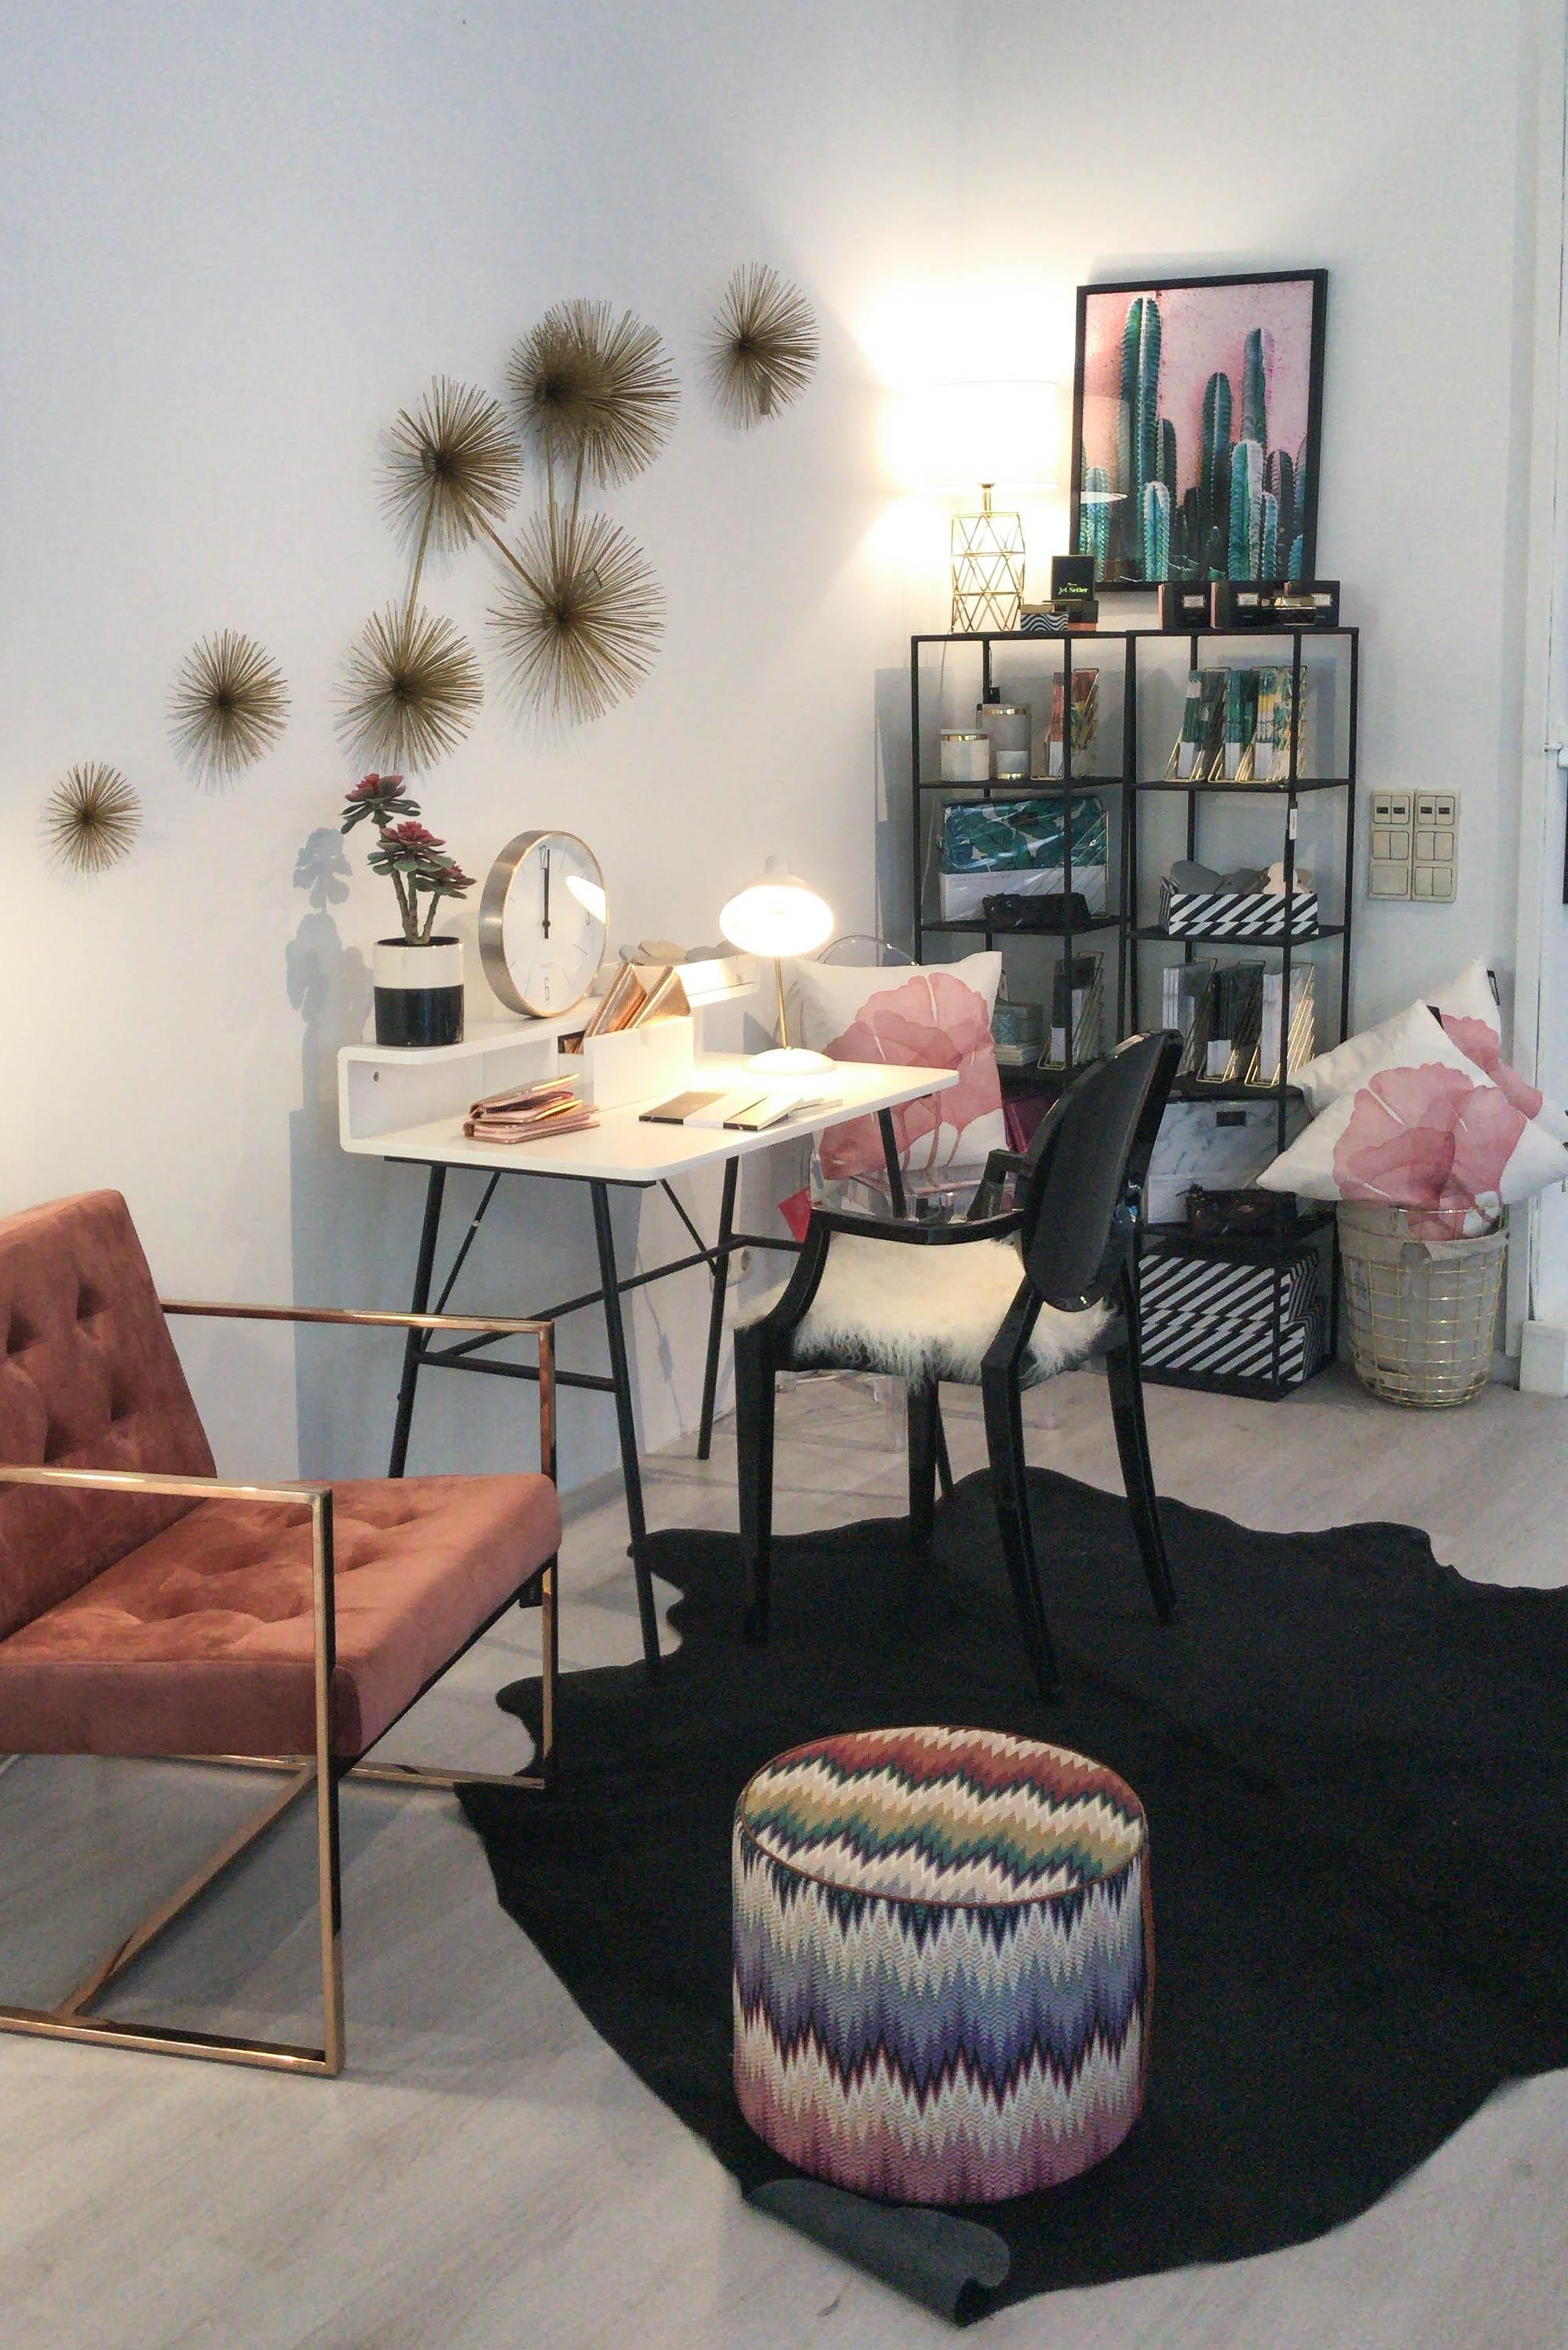 Homeoffice-Inspiration im neuen Westwing Pop-up Store in Hamburg! 